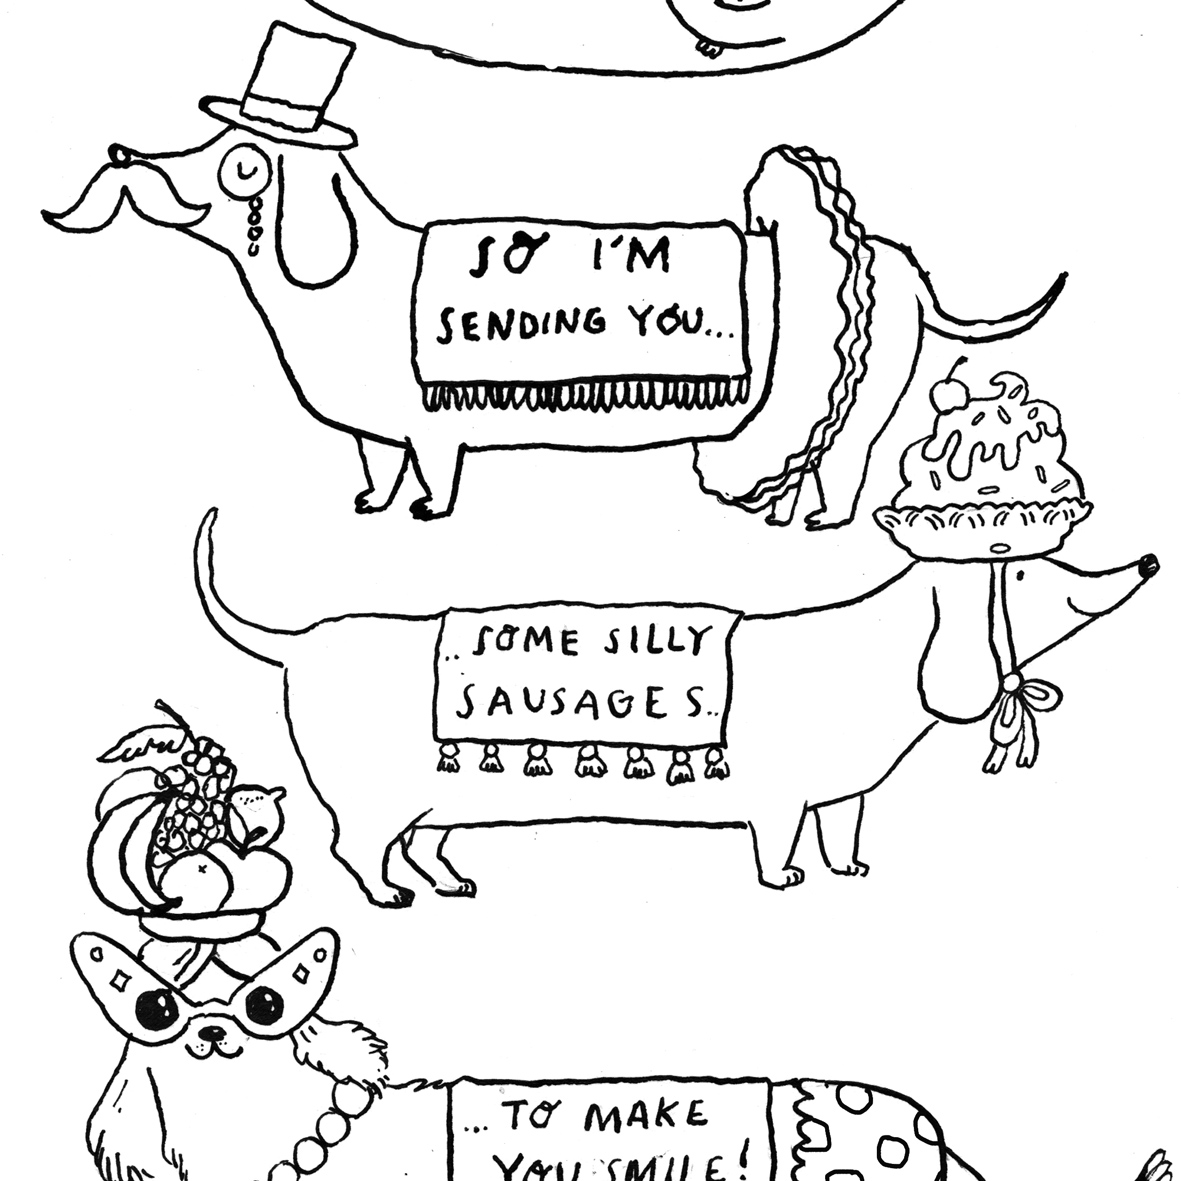 mailing-list-version-silly-sausages